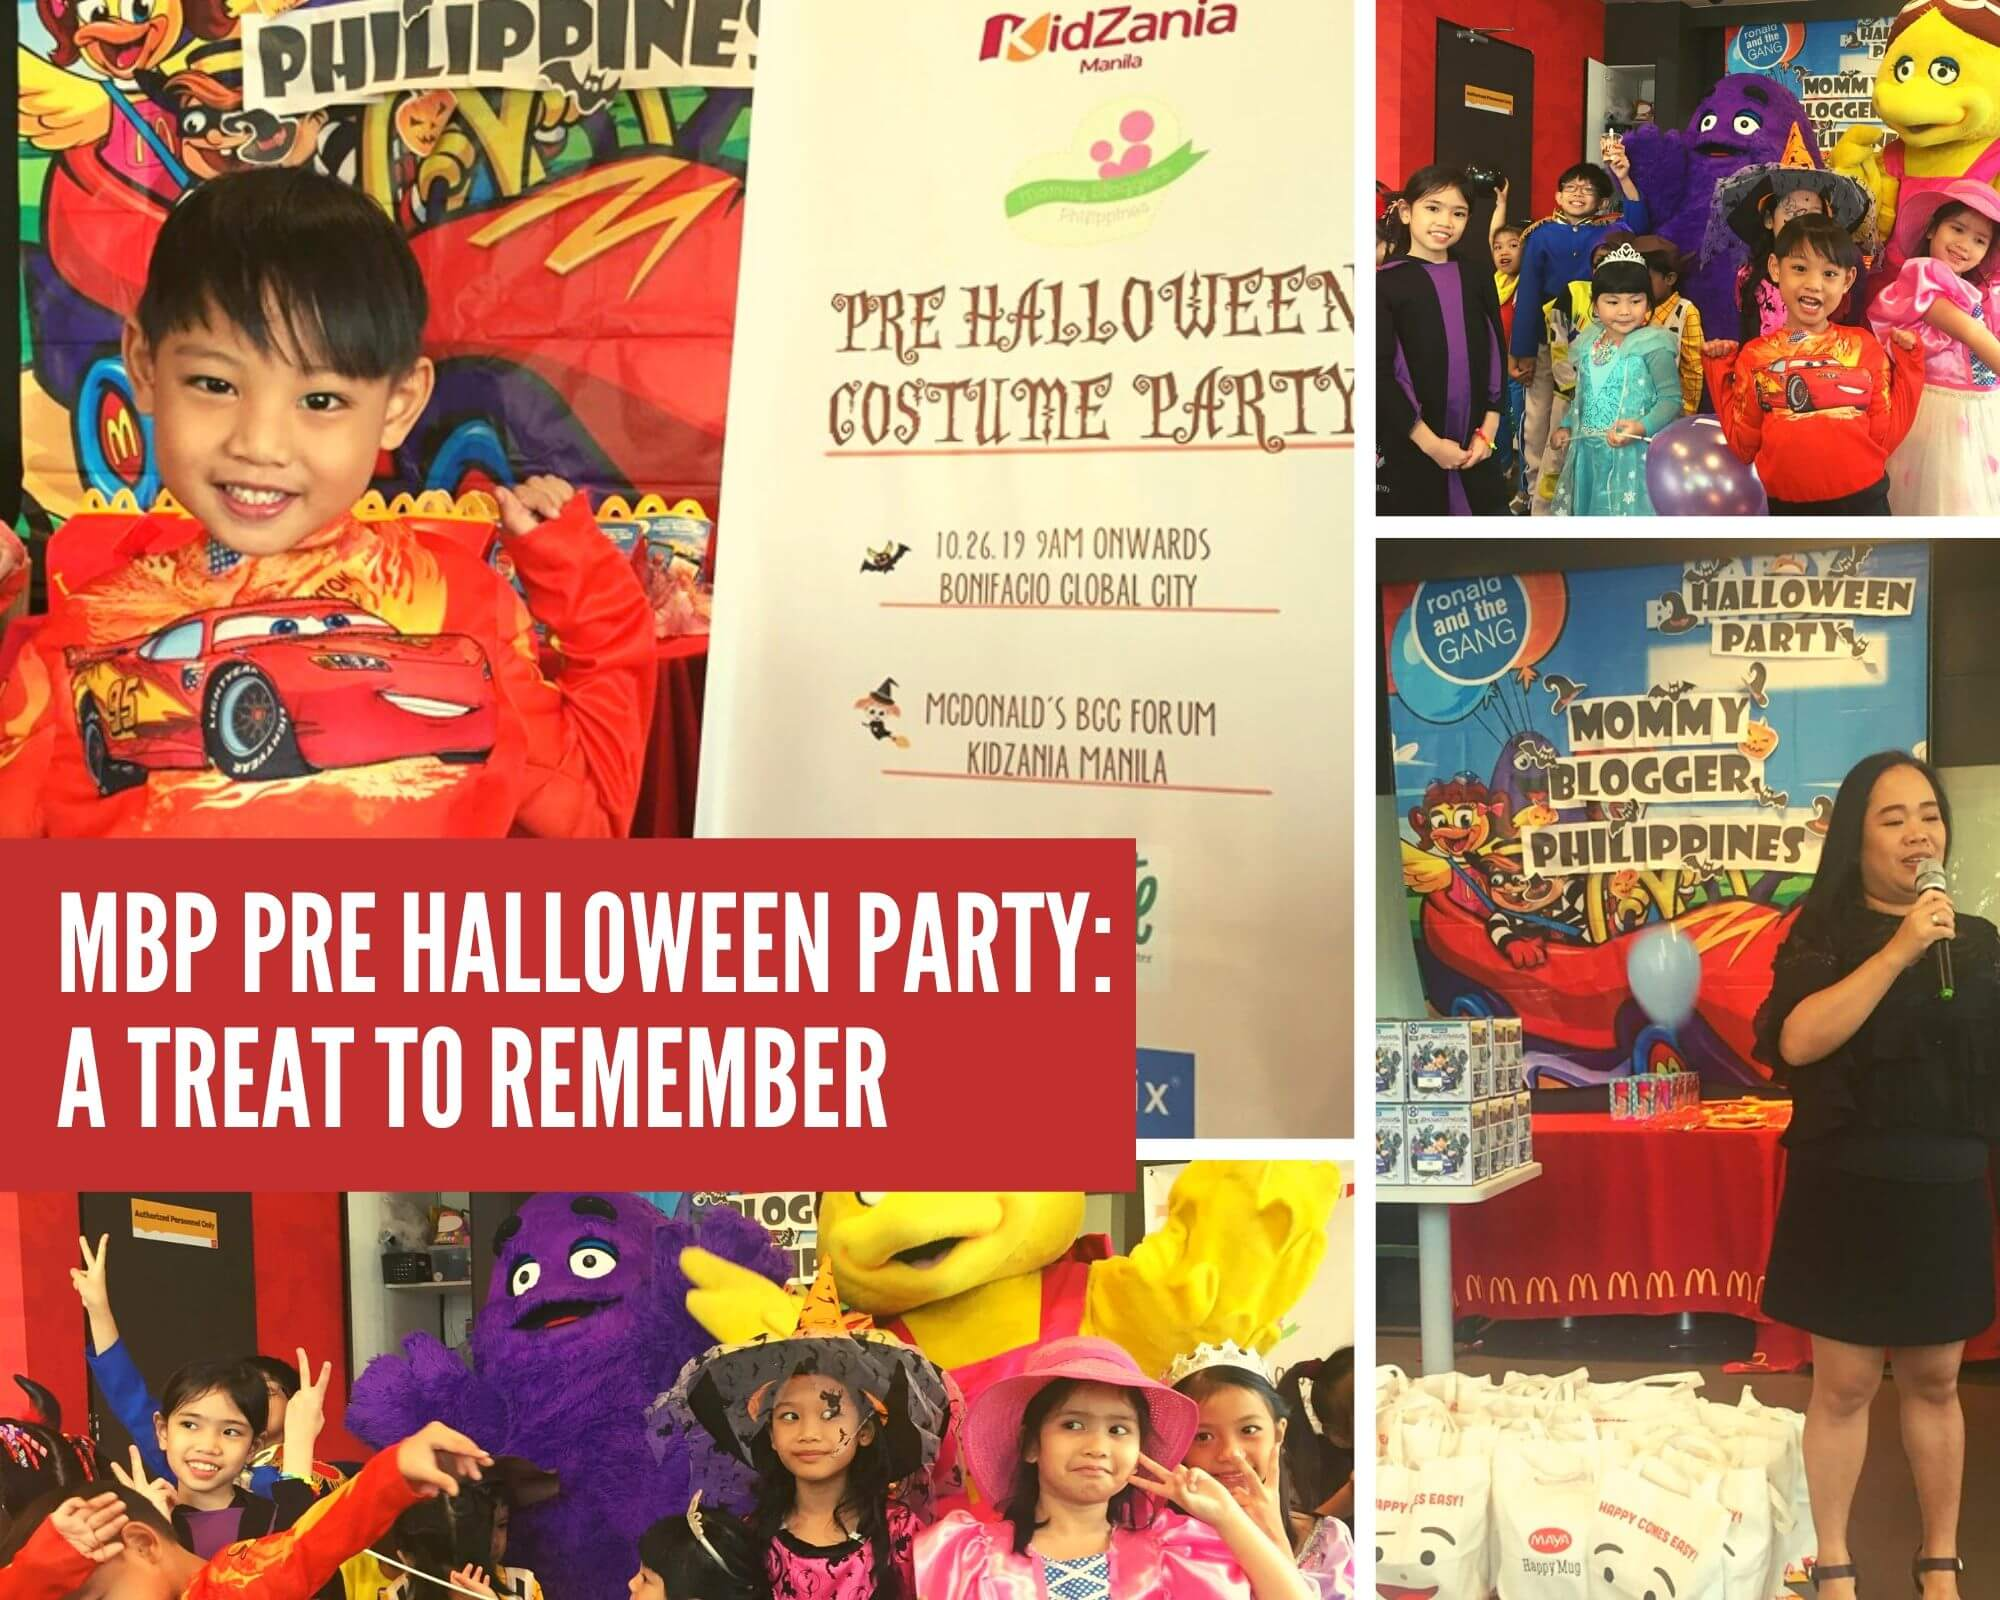 MBP Pre Halloween Party Playful Life with Kids 3